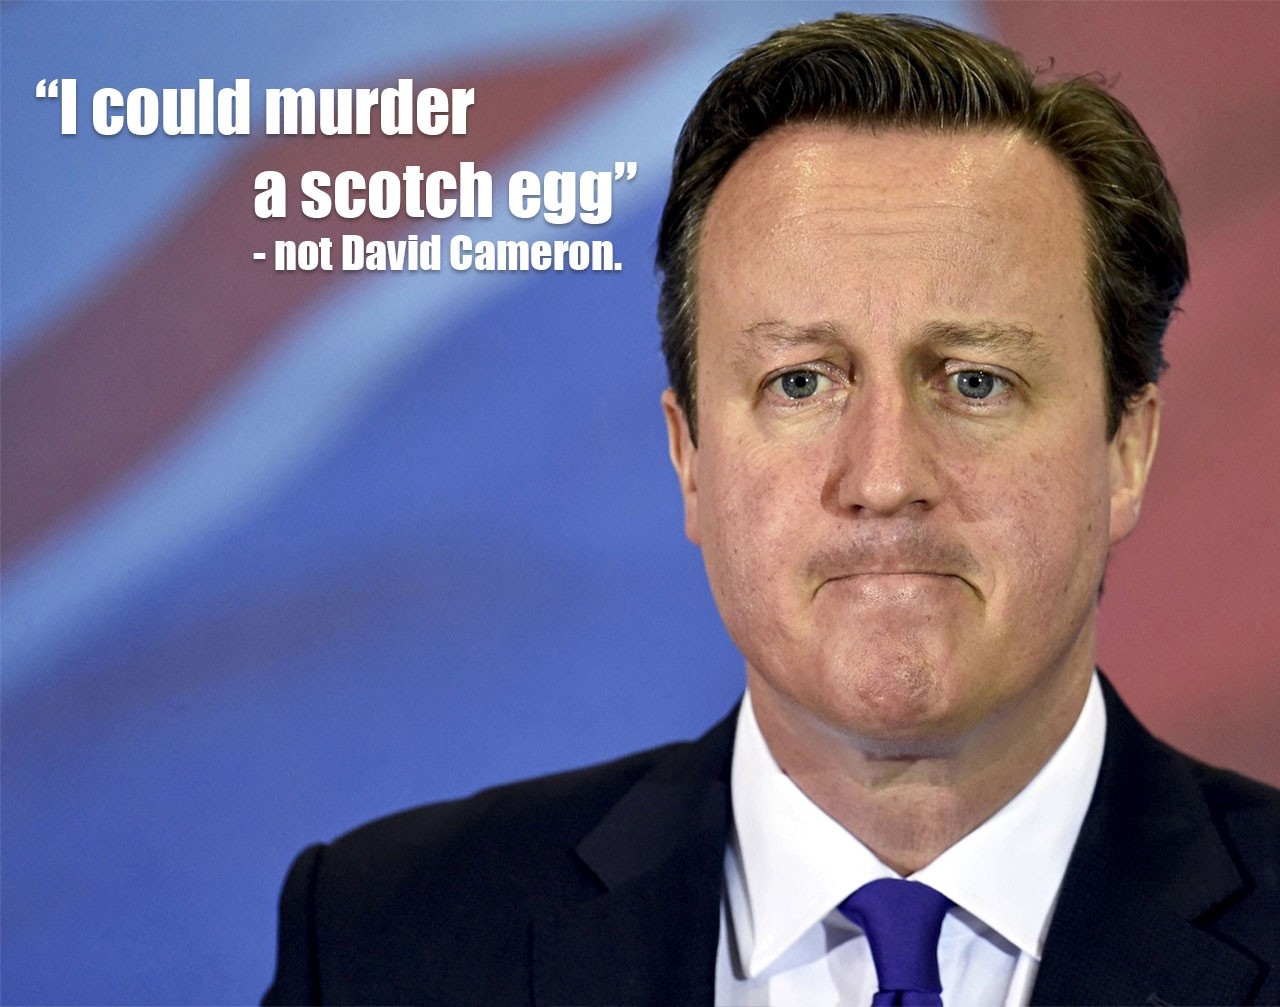 A photo of David Cameron with the false quote